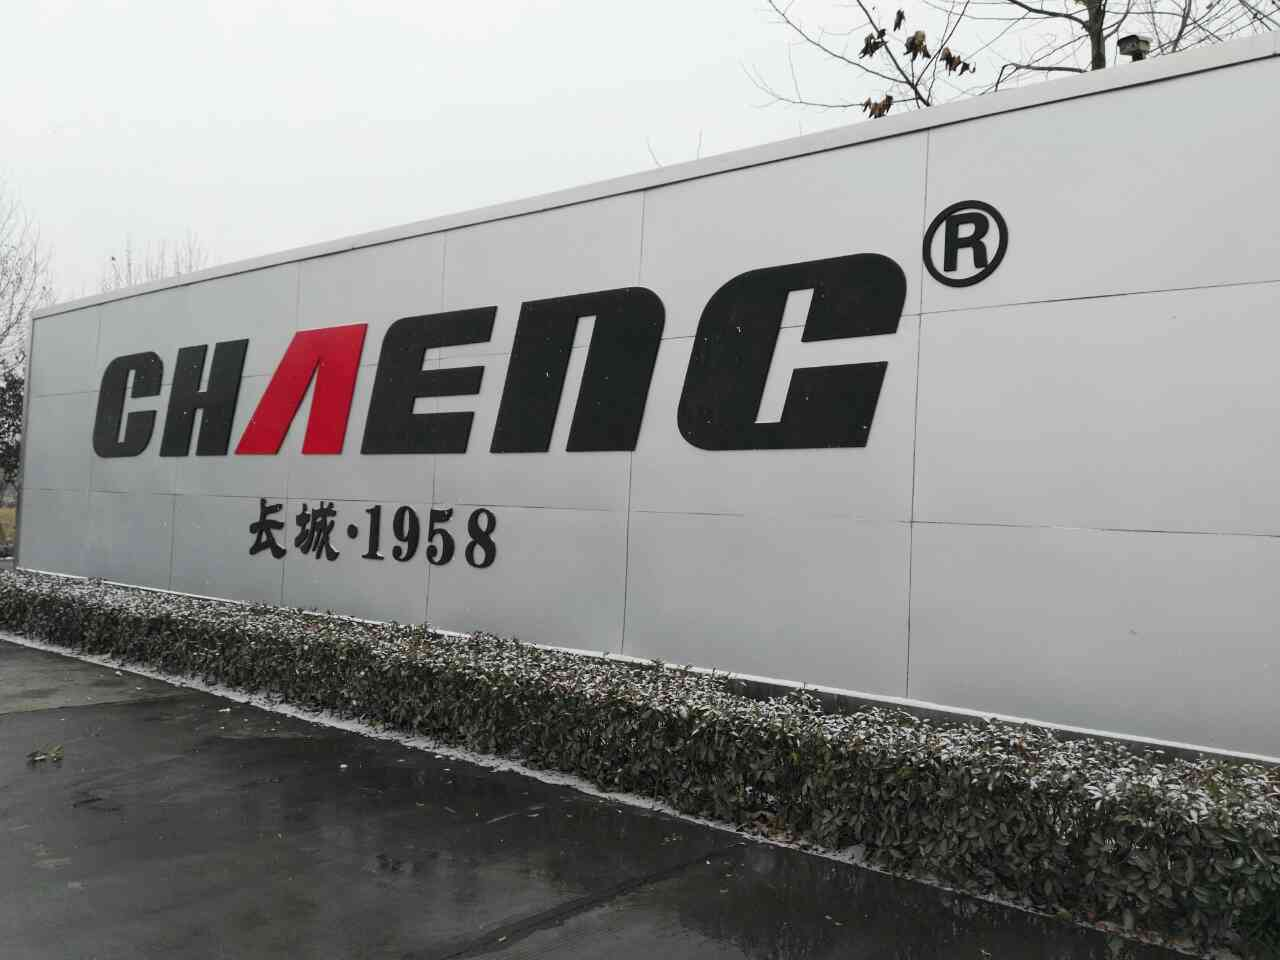 CHAENG/Great Wall Machinery Co., Ltd.